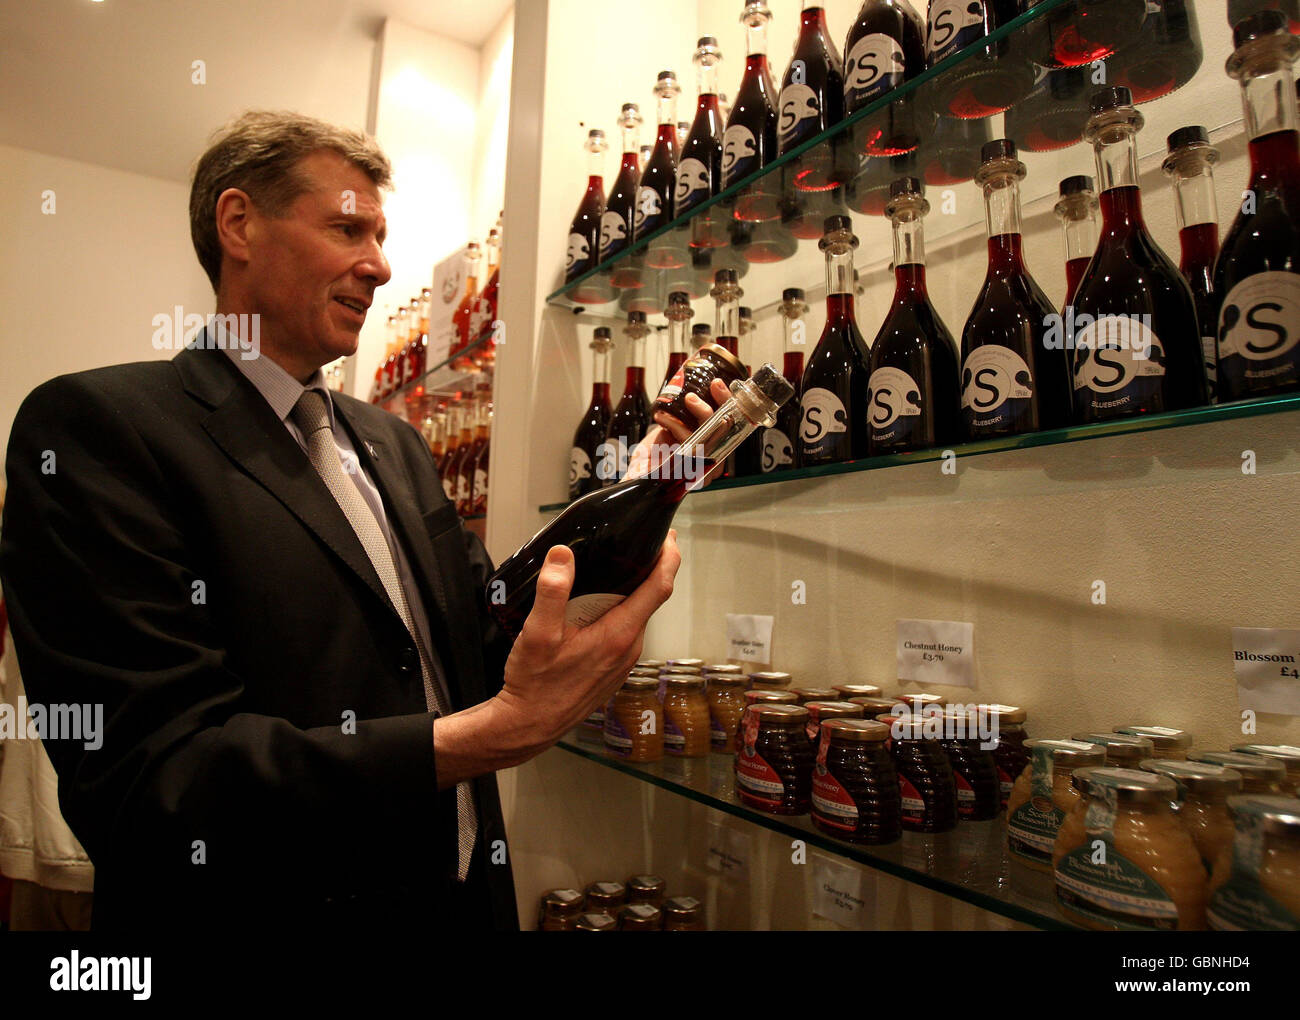 Distilleries and breweries exempt from alcohol displays laws - Stock Image